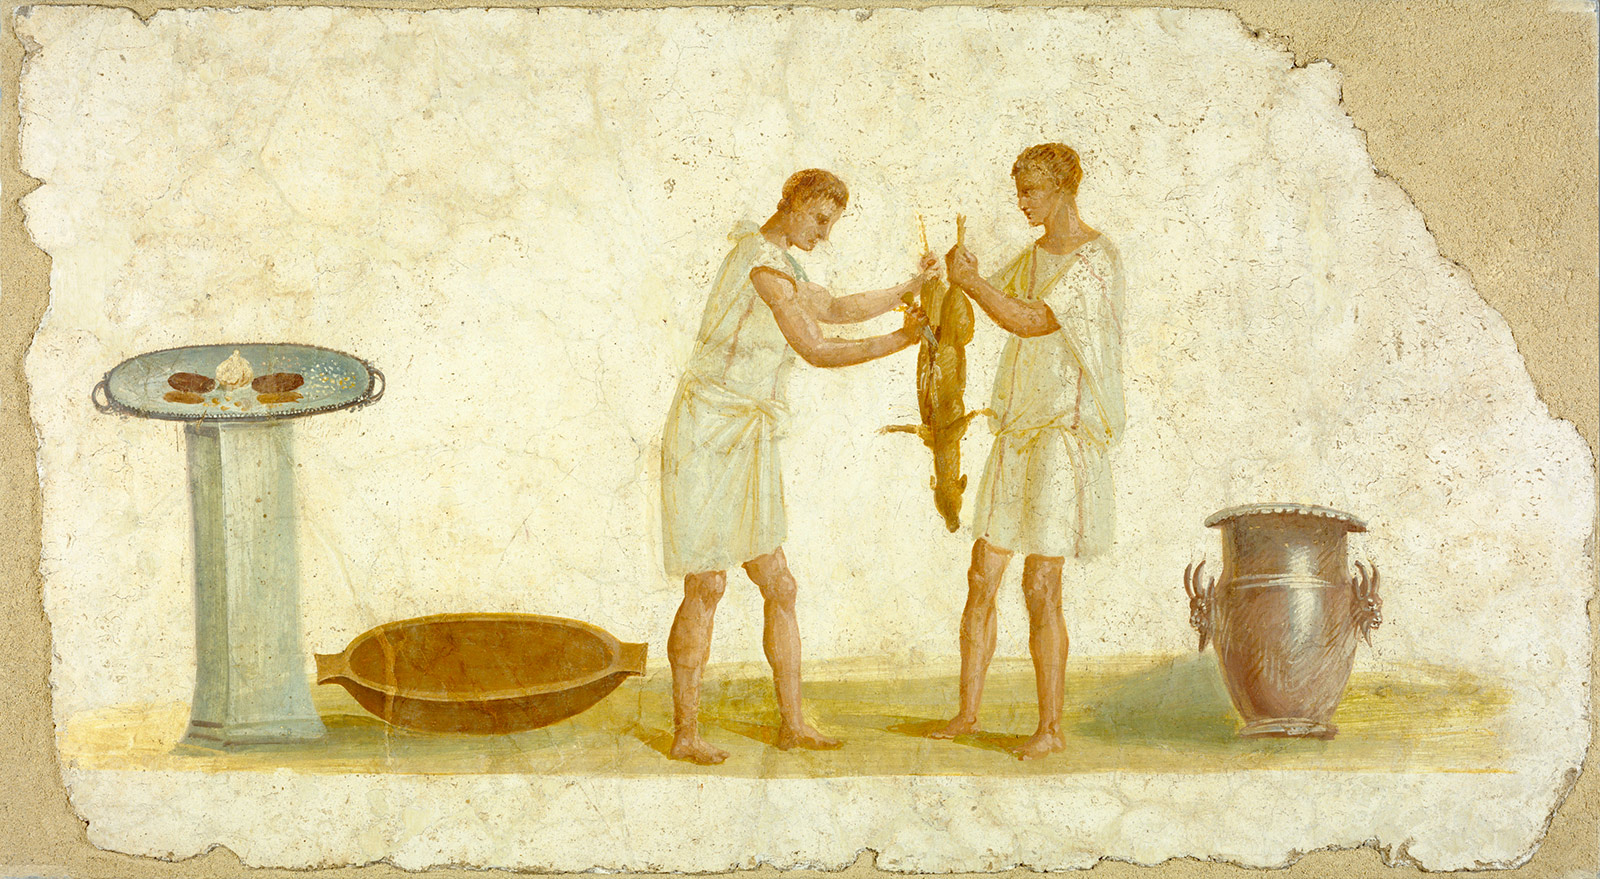 One person holds an animal carcass, possibly a deer, while another uses a knife to cut it down the center. Both wear togas.